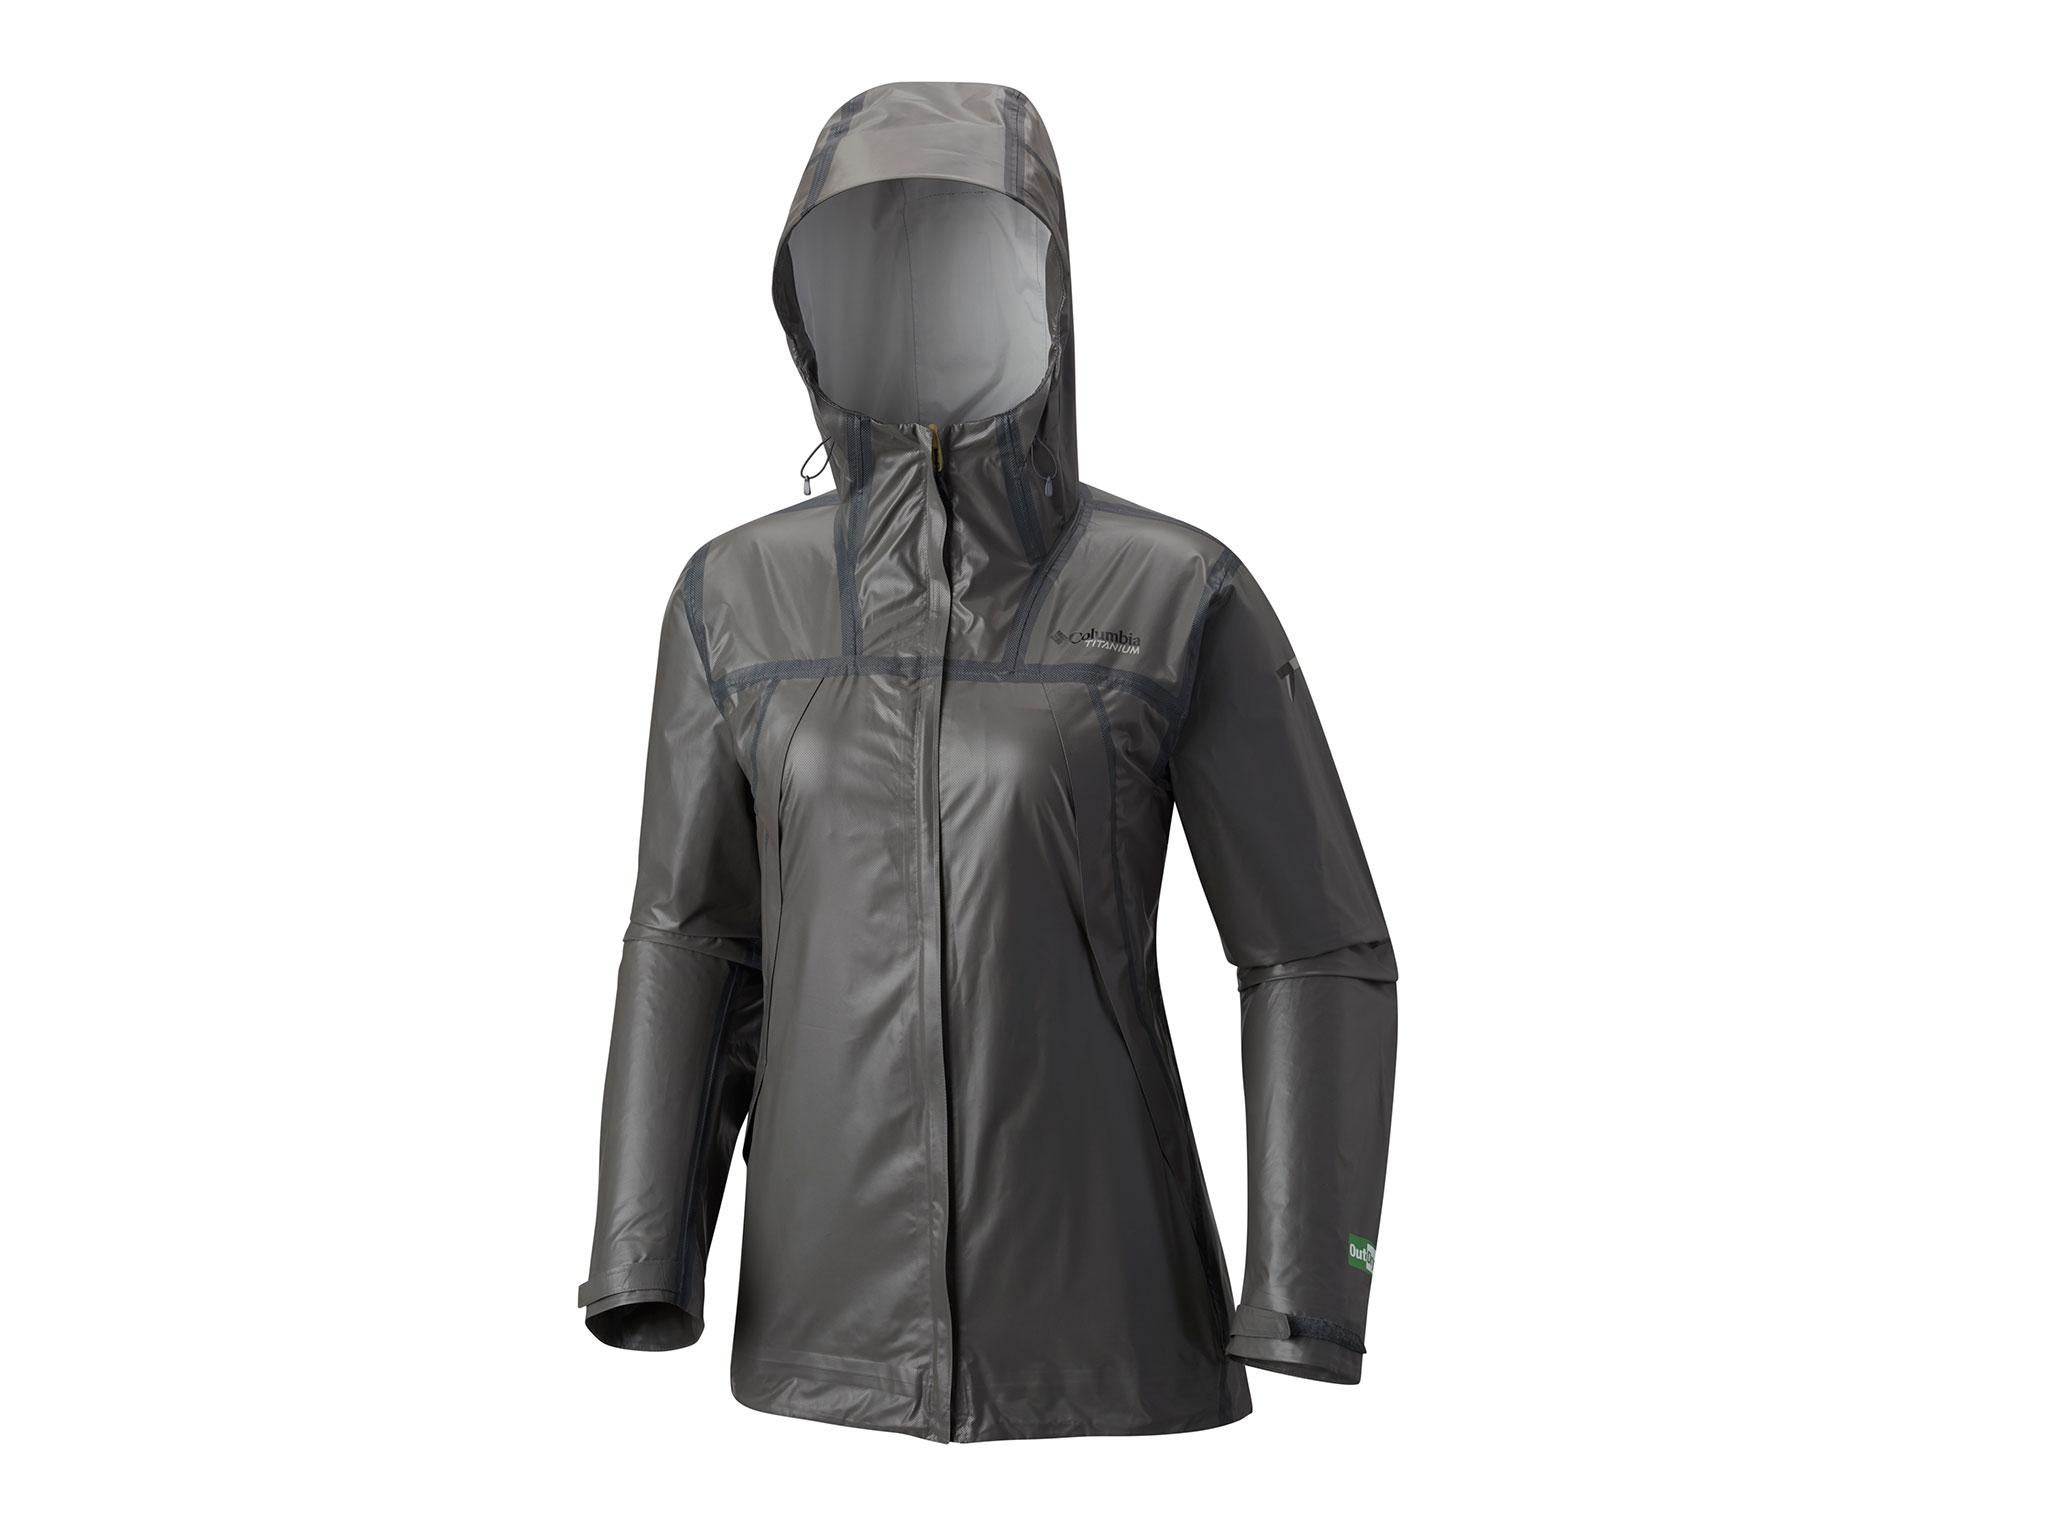 waterproof women best Independent 10 The jackets for 586UwnBF